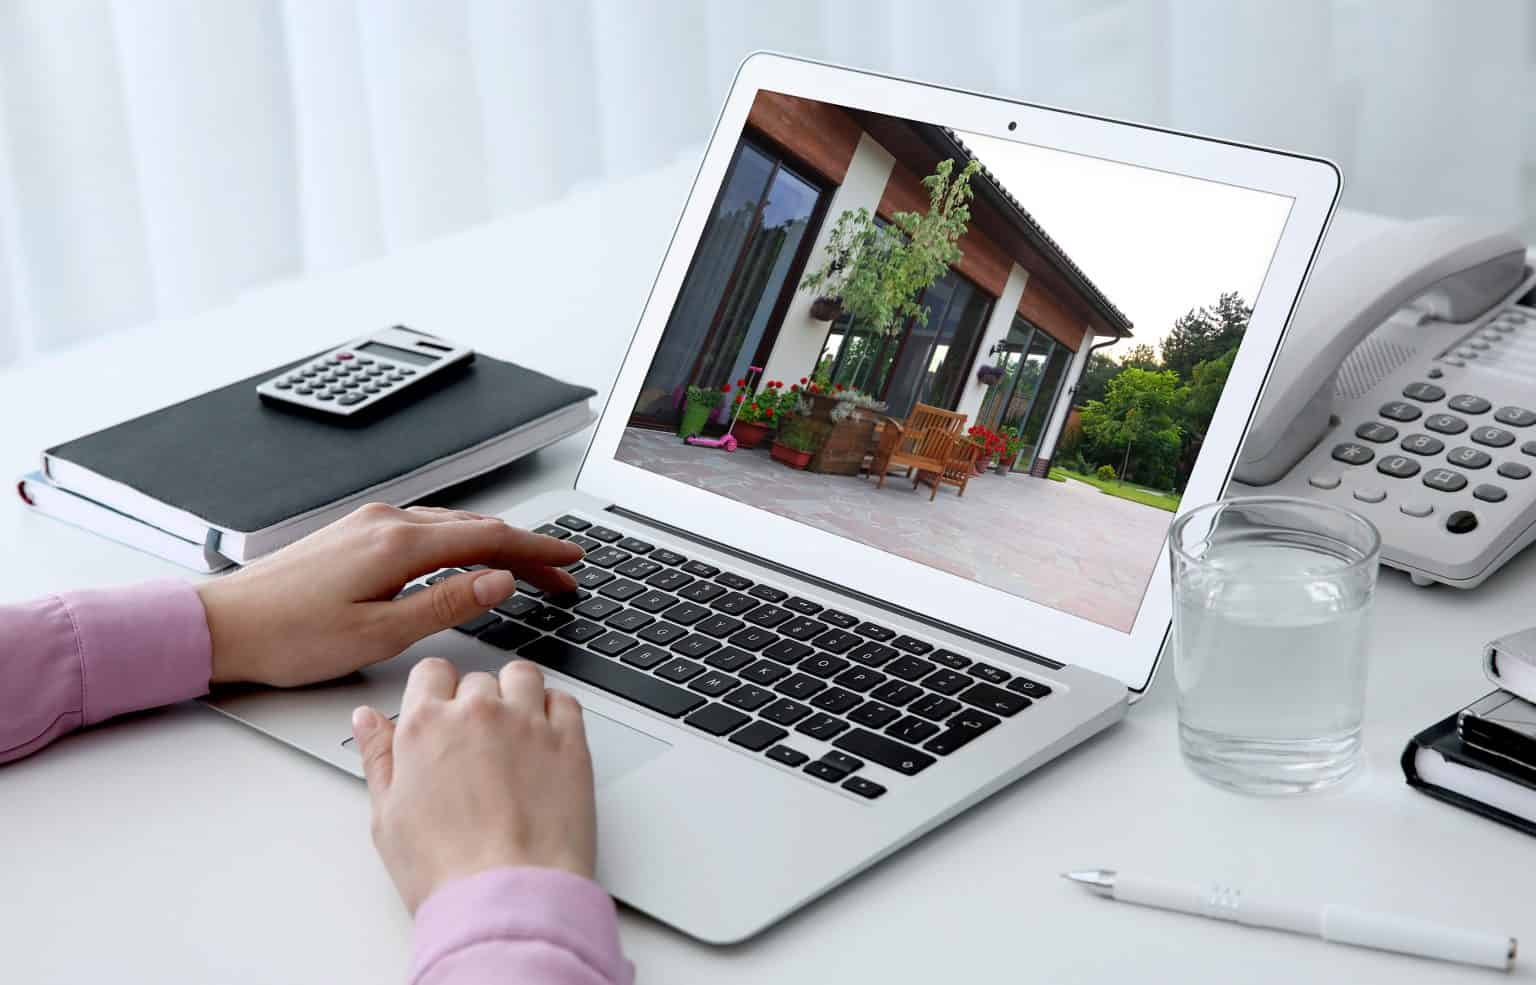 electronic conveyancing and the way we buy and sell property is changing